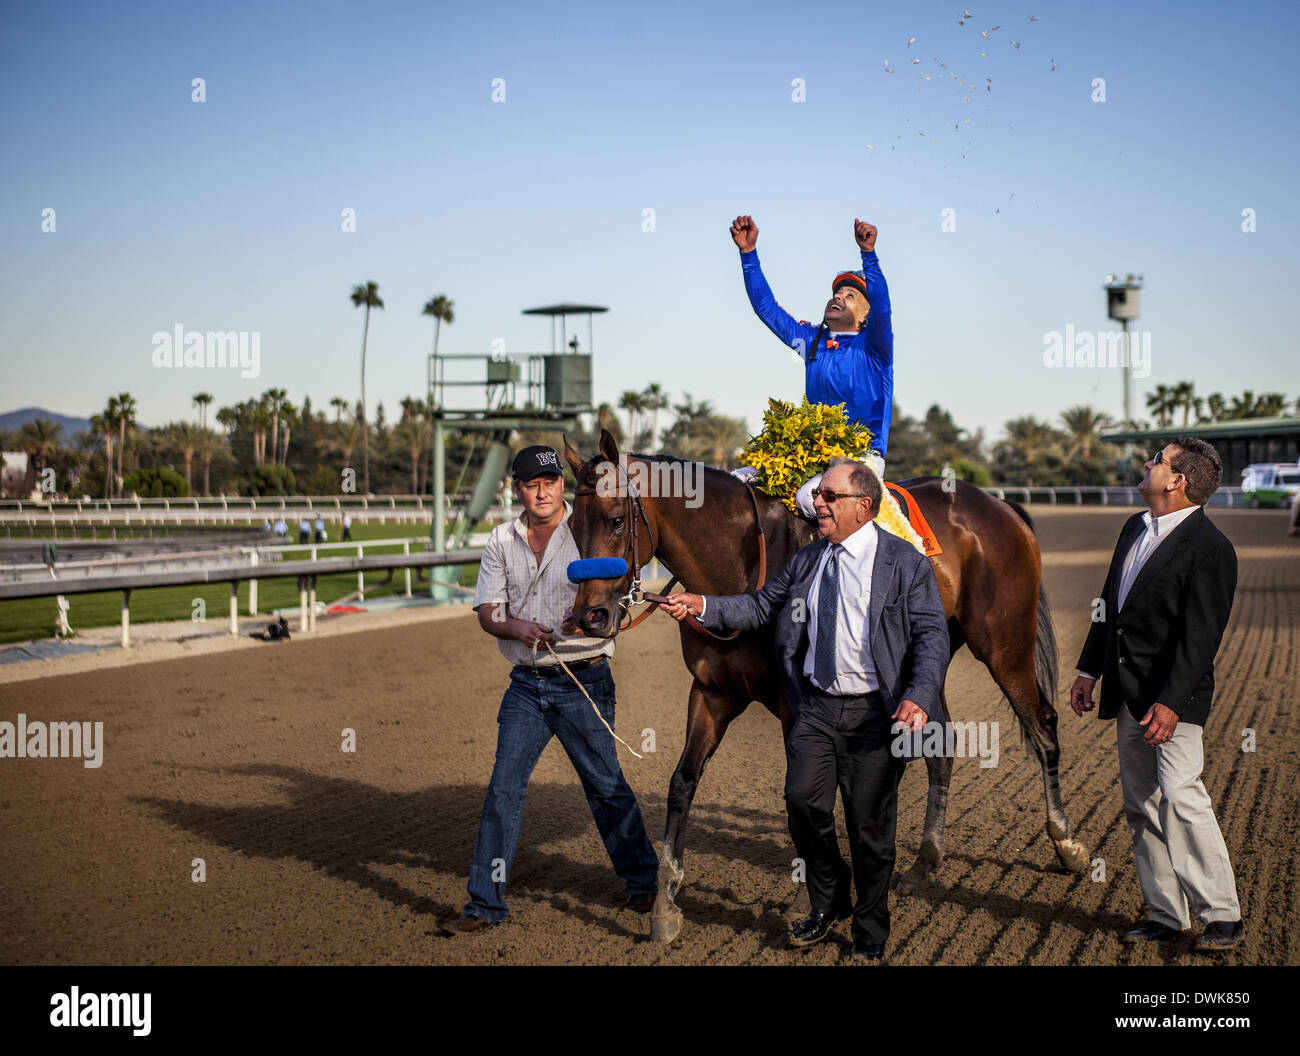 Arcadia, CA, USA. 8th Mar, 2014. Game on Dude, ridden by Mike Smith wins the Santa Anita Handicap (G1) at Santa Anita Park on March 8, 2014 in Arcadia, California © Alex Evers/Eclipse Sportswire/Eclipse/ZUMAPRESS.com/Alamy Live News - Stock Image